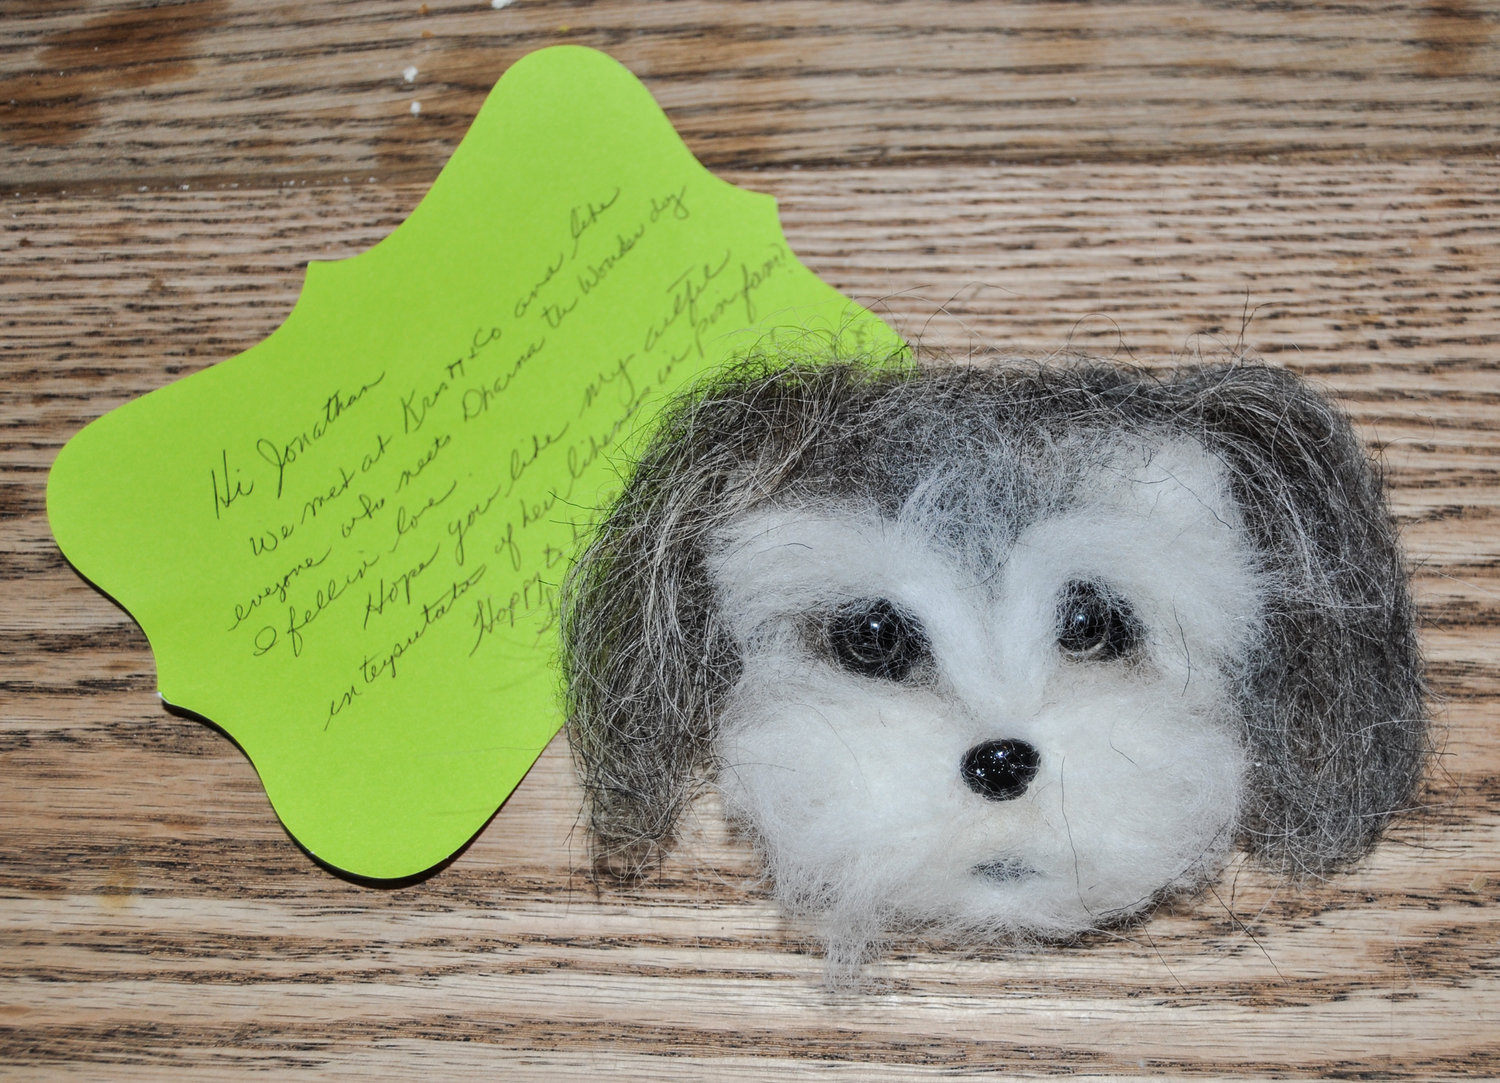 Elinor Dandrea's incredibly detailed needle-felted interpretation of Dharma the Wonder Dog's adorable face arrived unexpectedly, lifting my spirits and giving me hope amidst the bleak landscape of COVID-19. Thanks, Elinor!